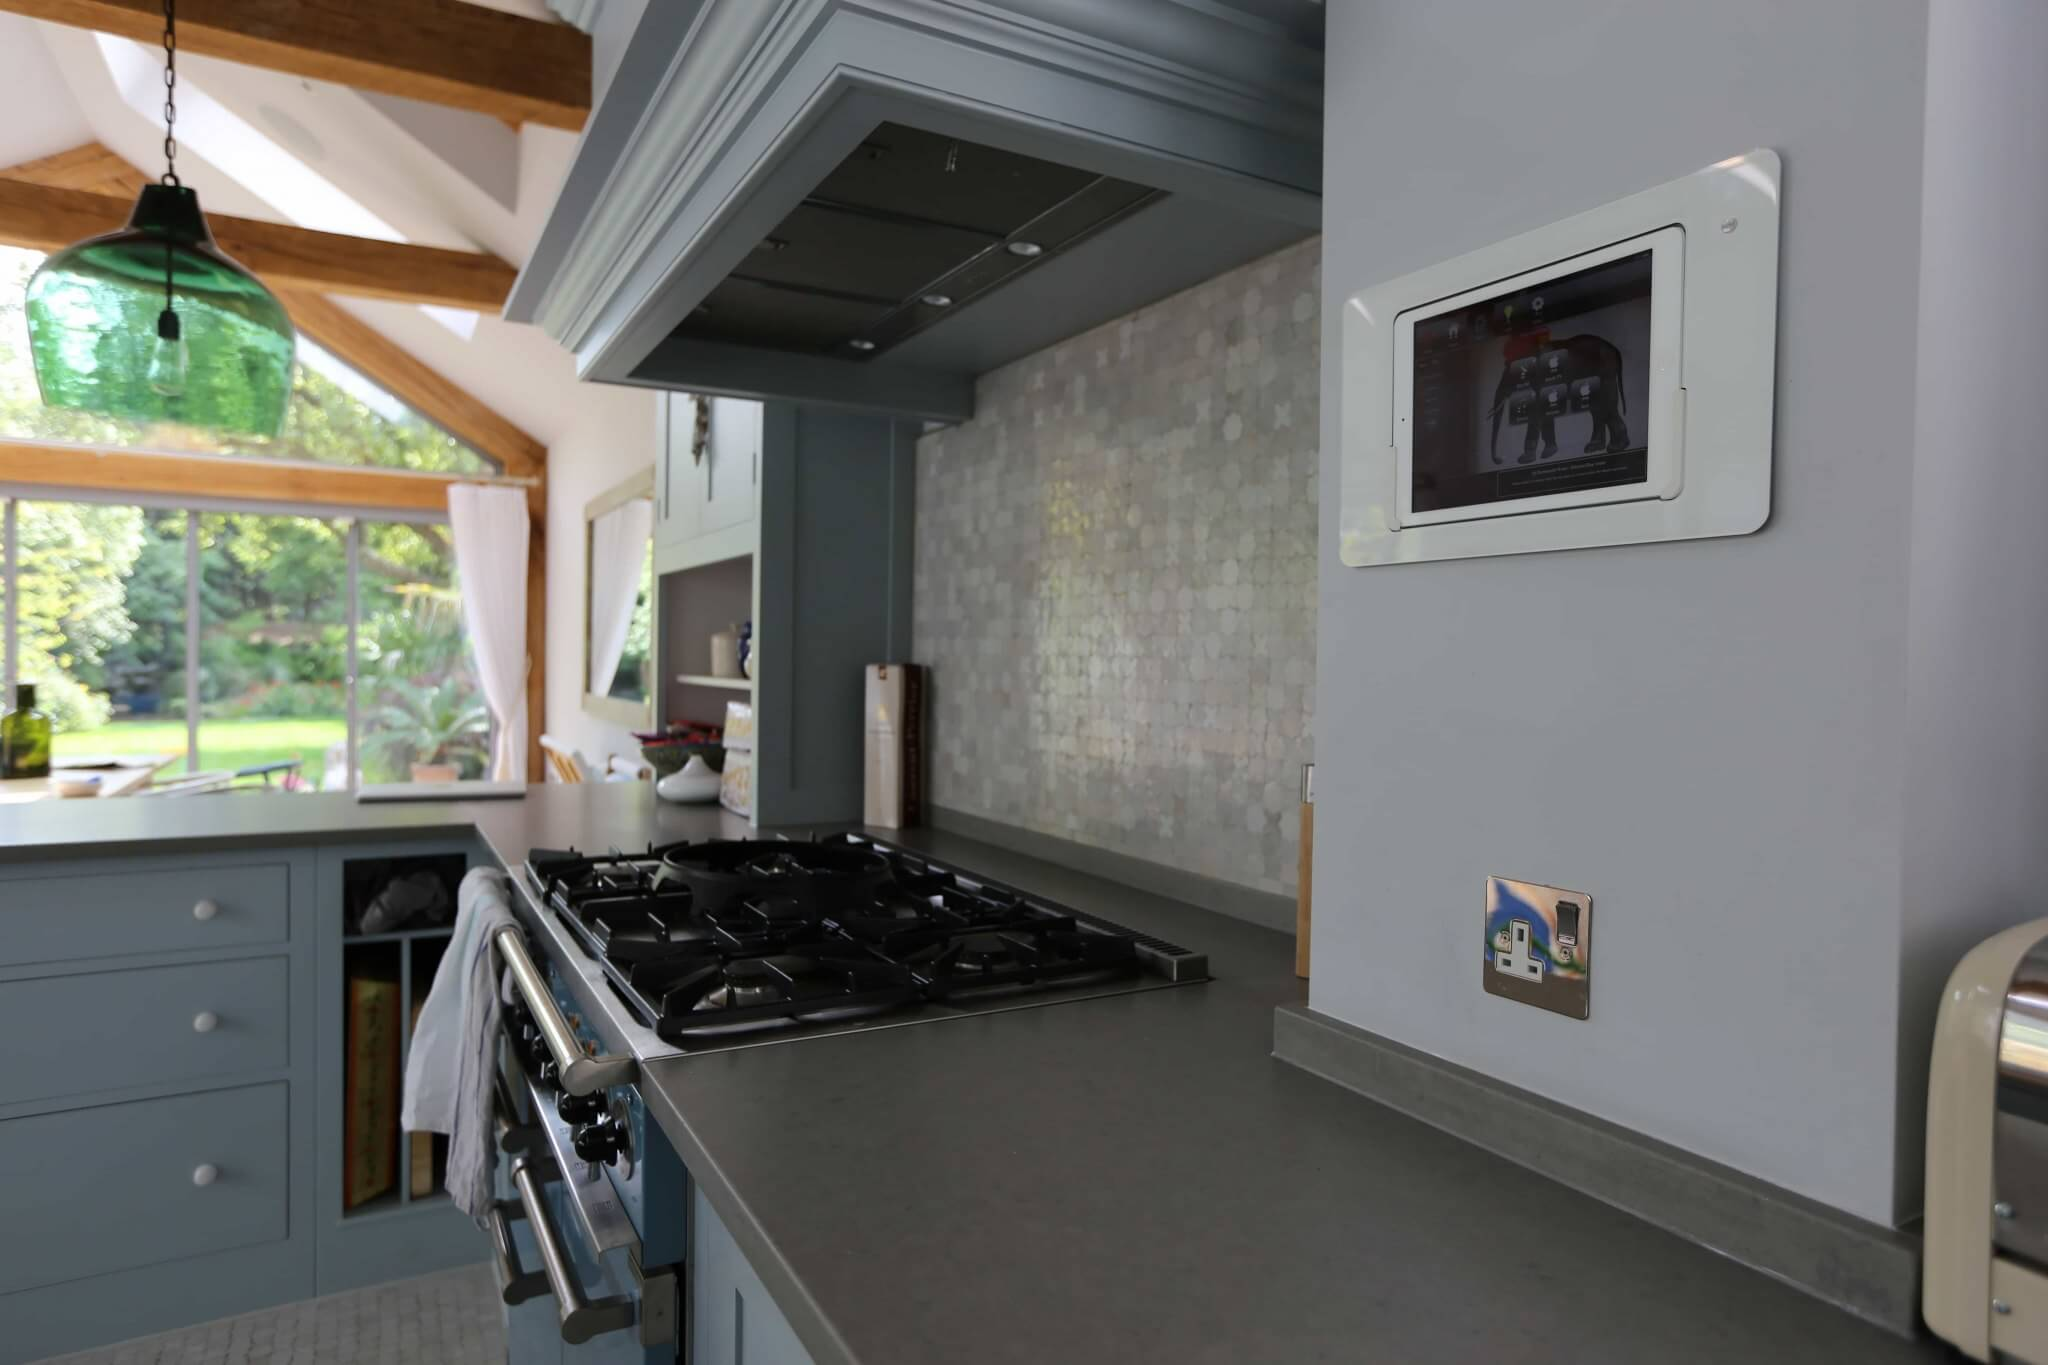 iPad in-wall control in Kitchen